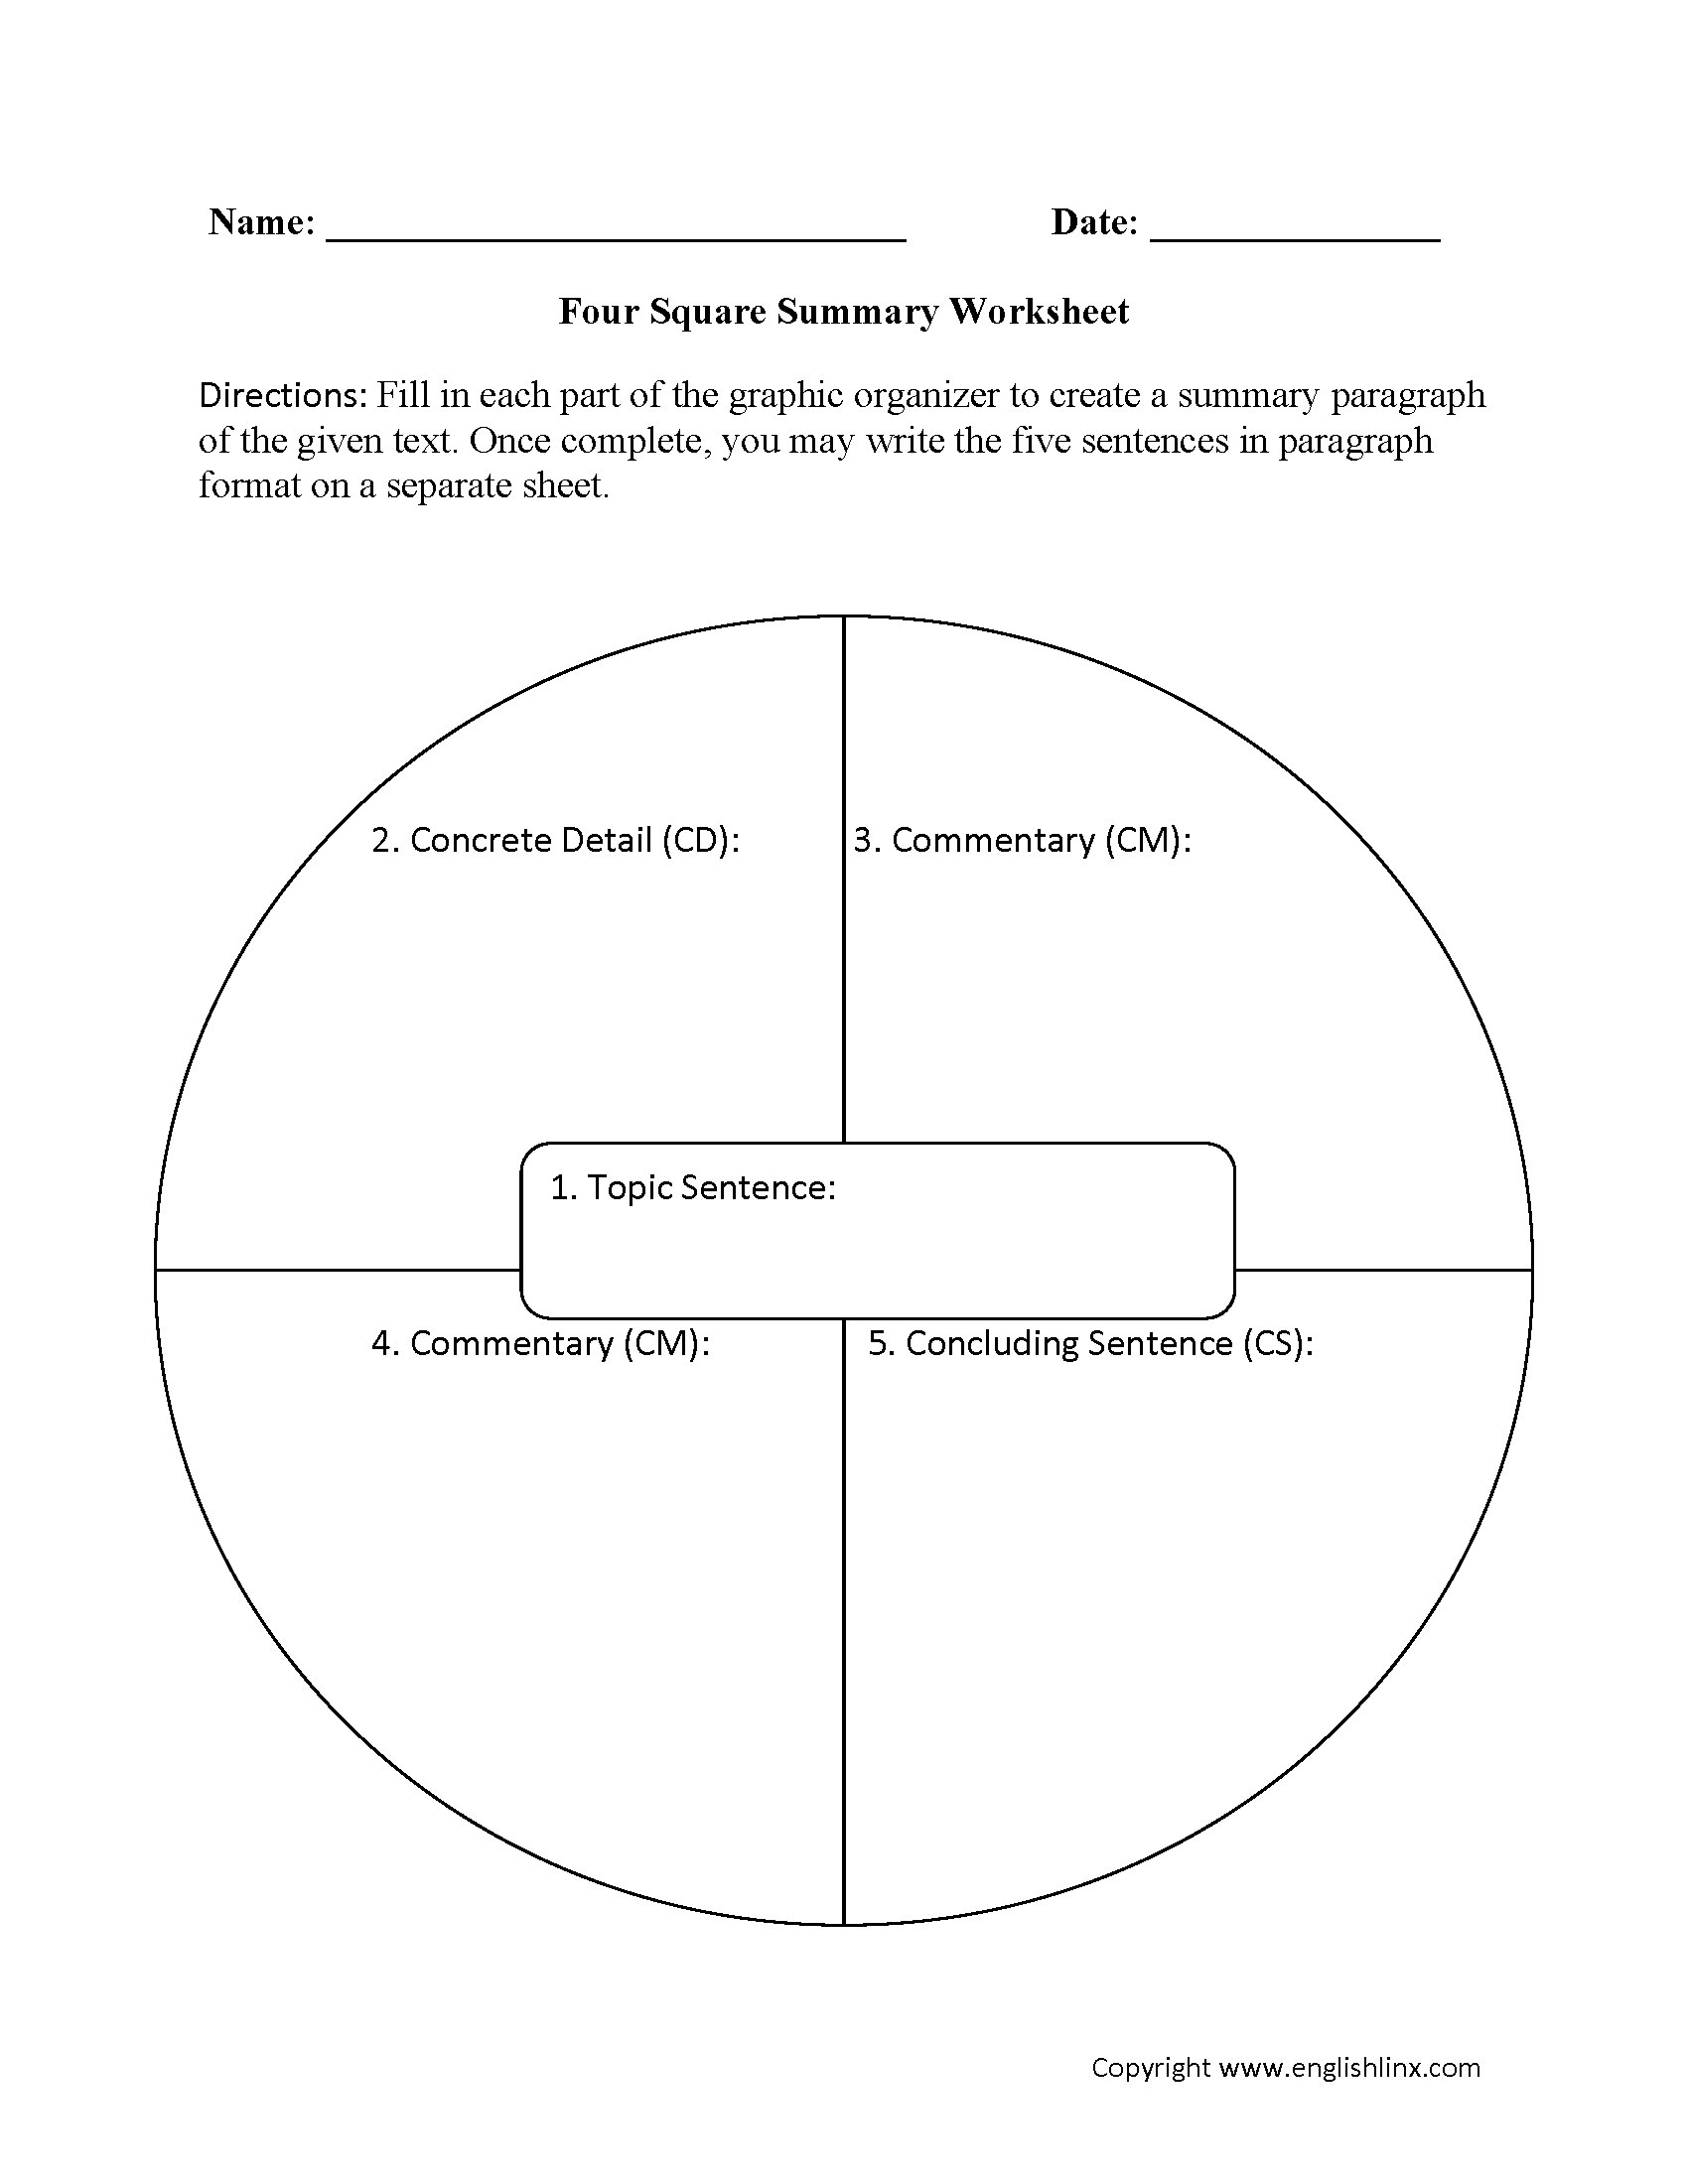 worksheet Summary Worksheet englishlinx com summary worksheets worksheets